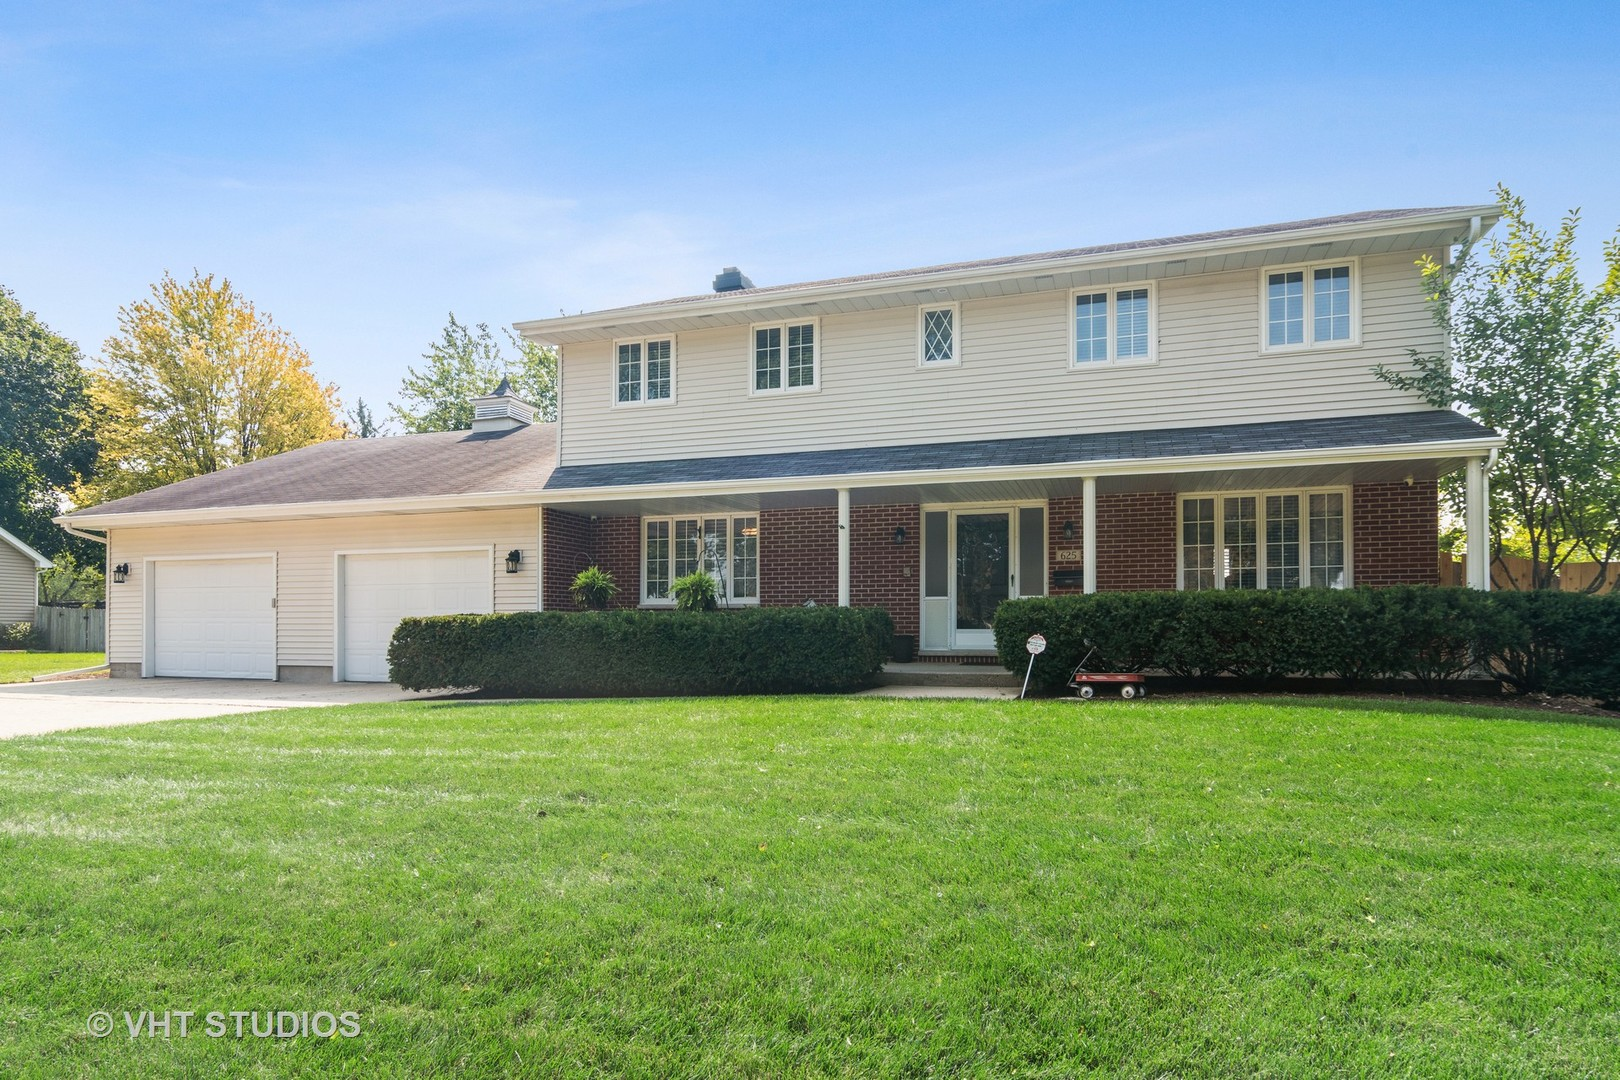 Photo for 625 E State Street, South Elgin, IL 60177 (MLS # 10861767)